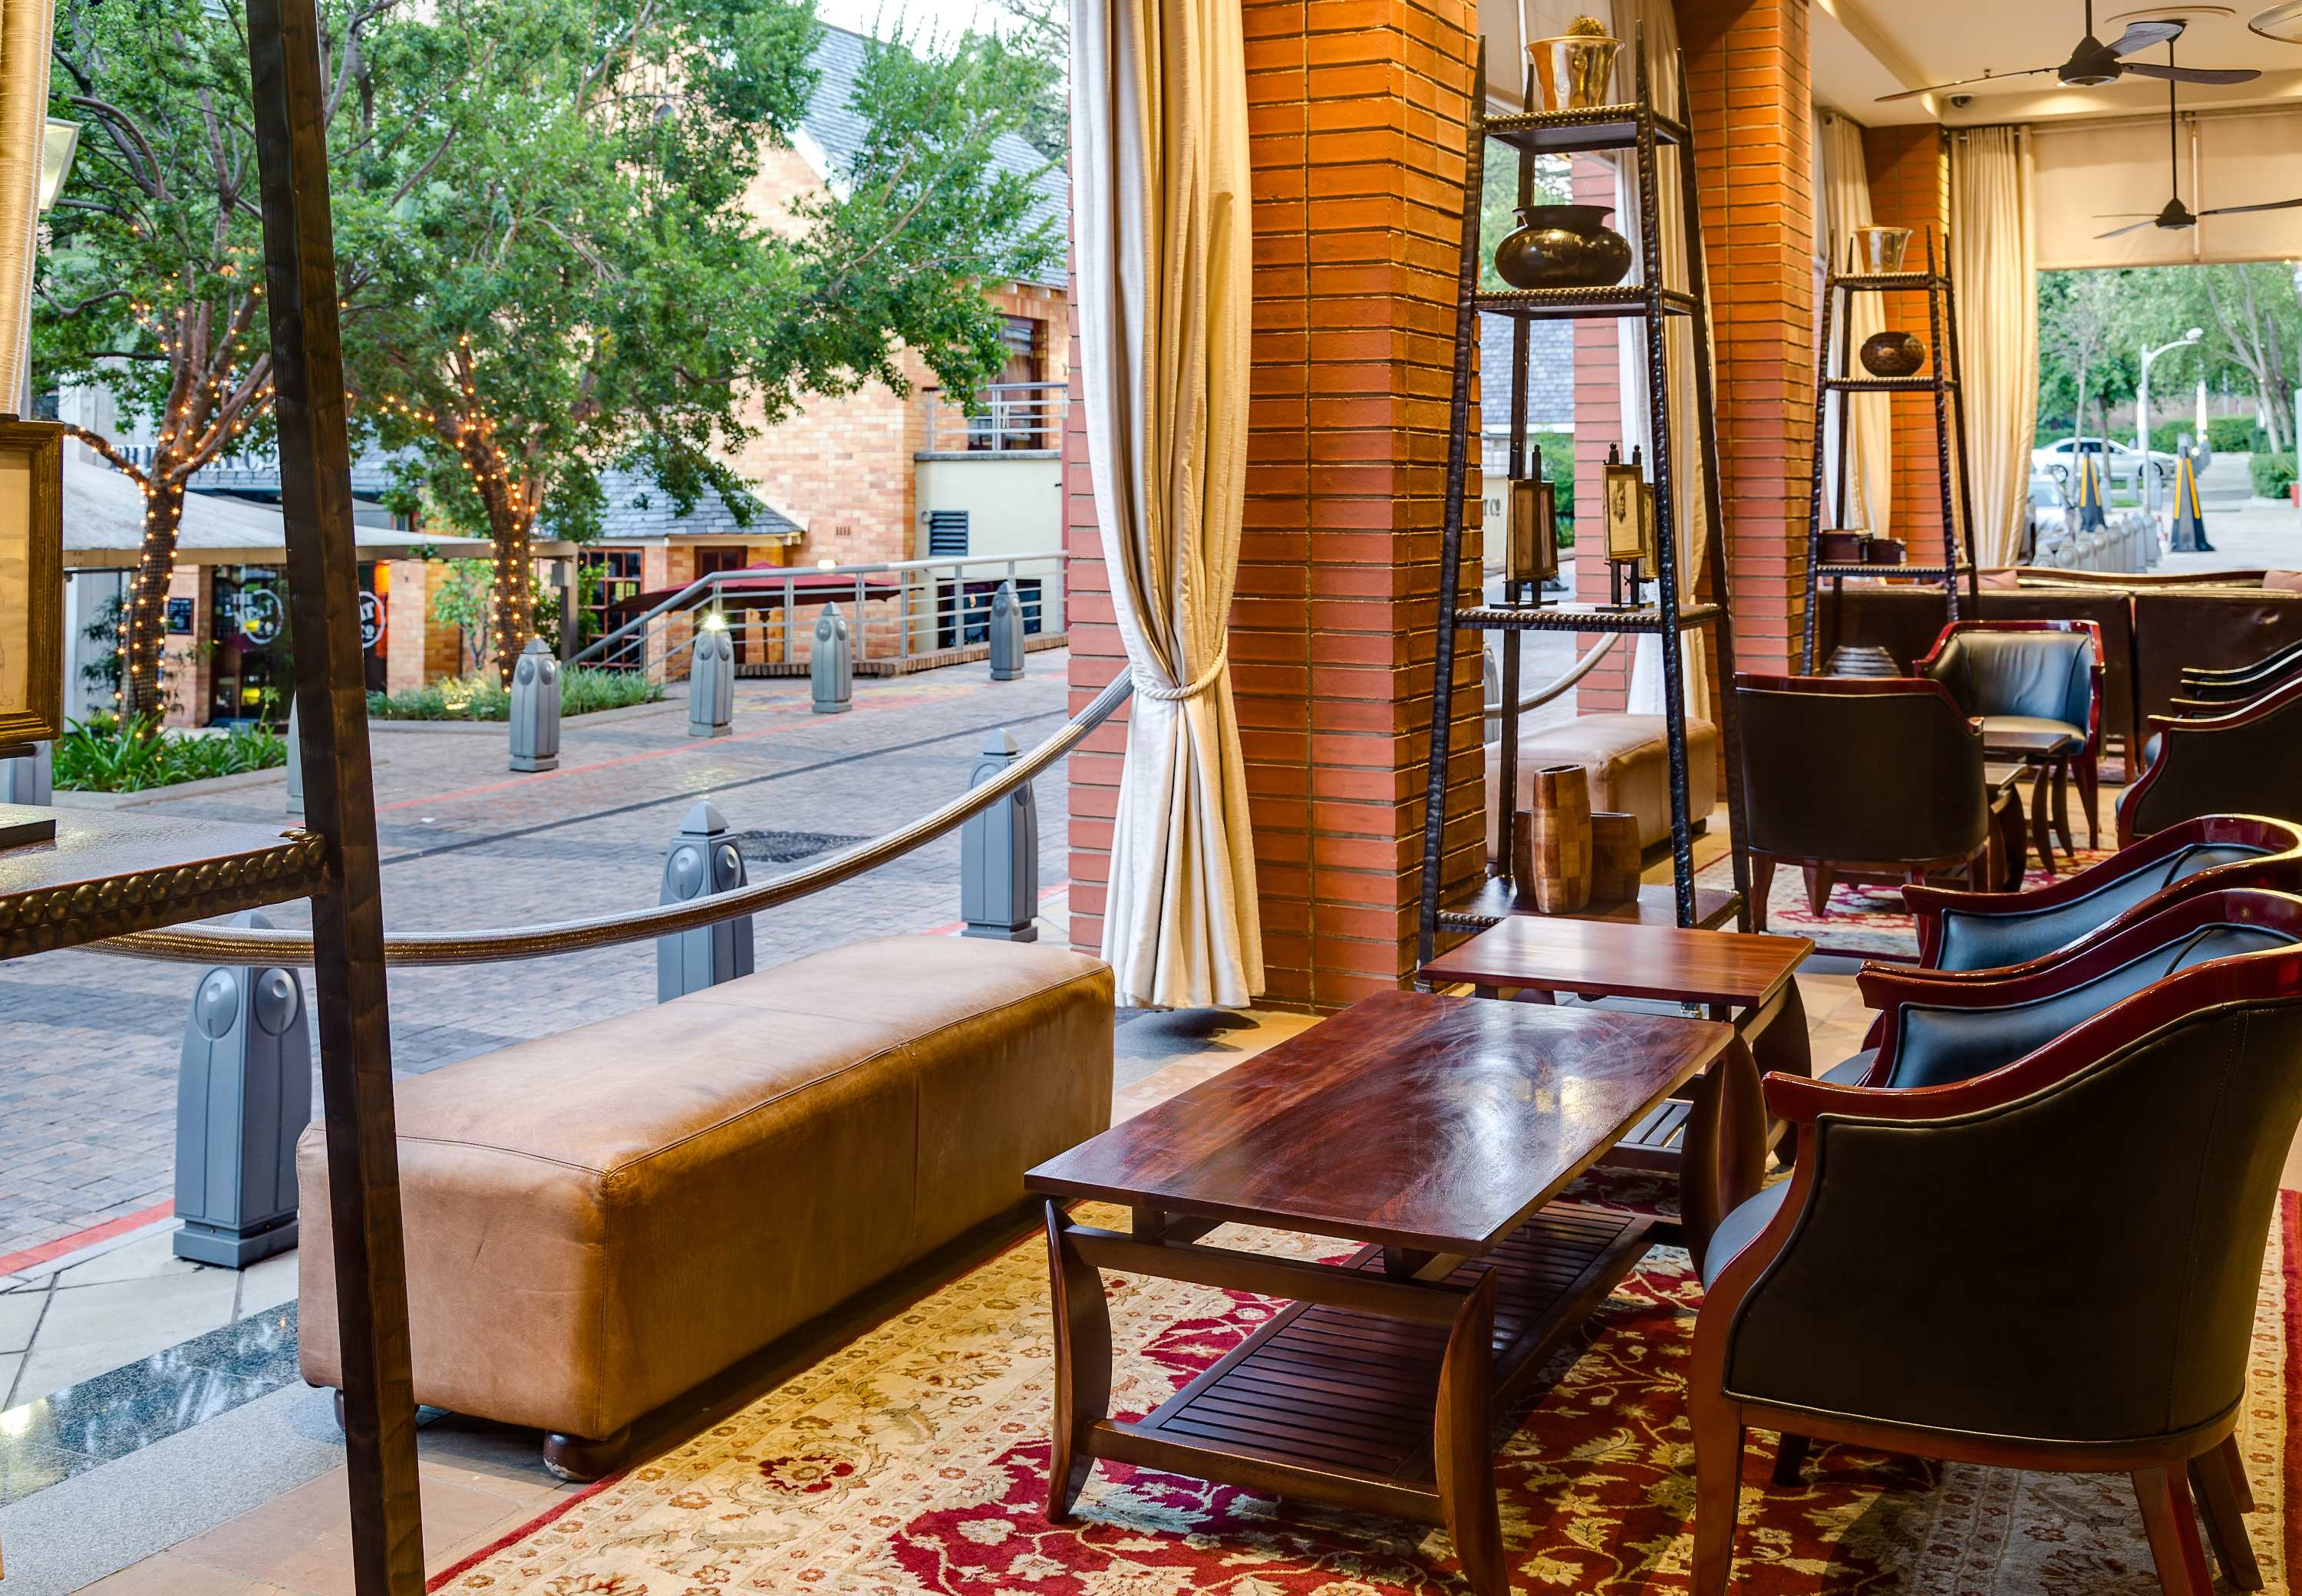 African Pride Melrose Arch, Autograph Collection